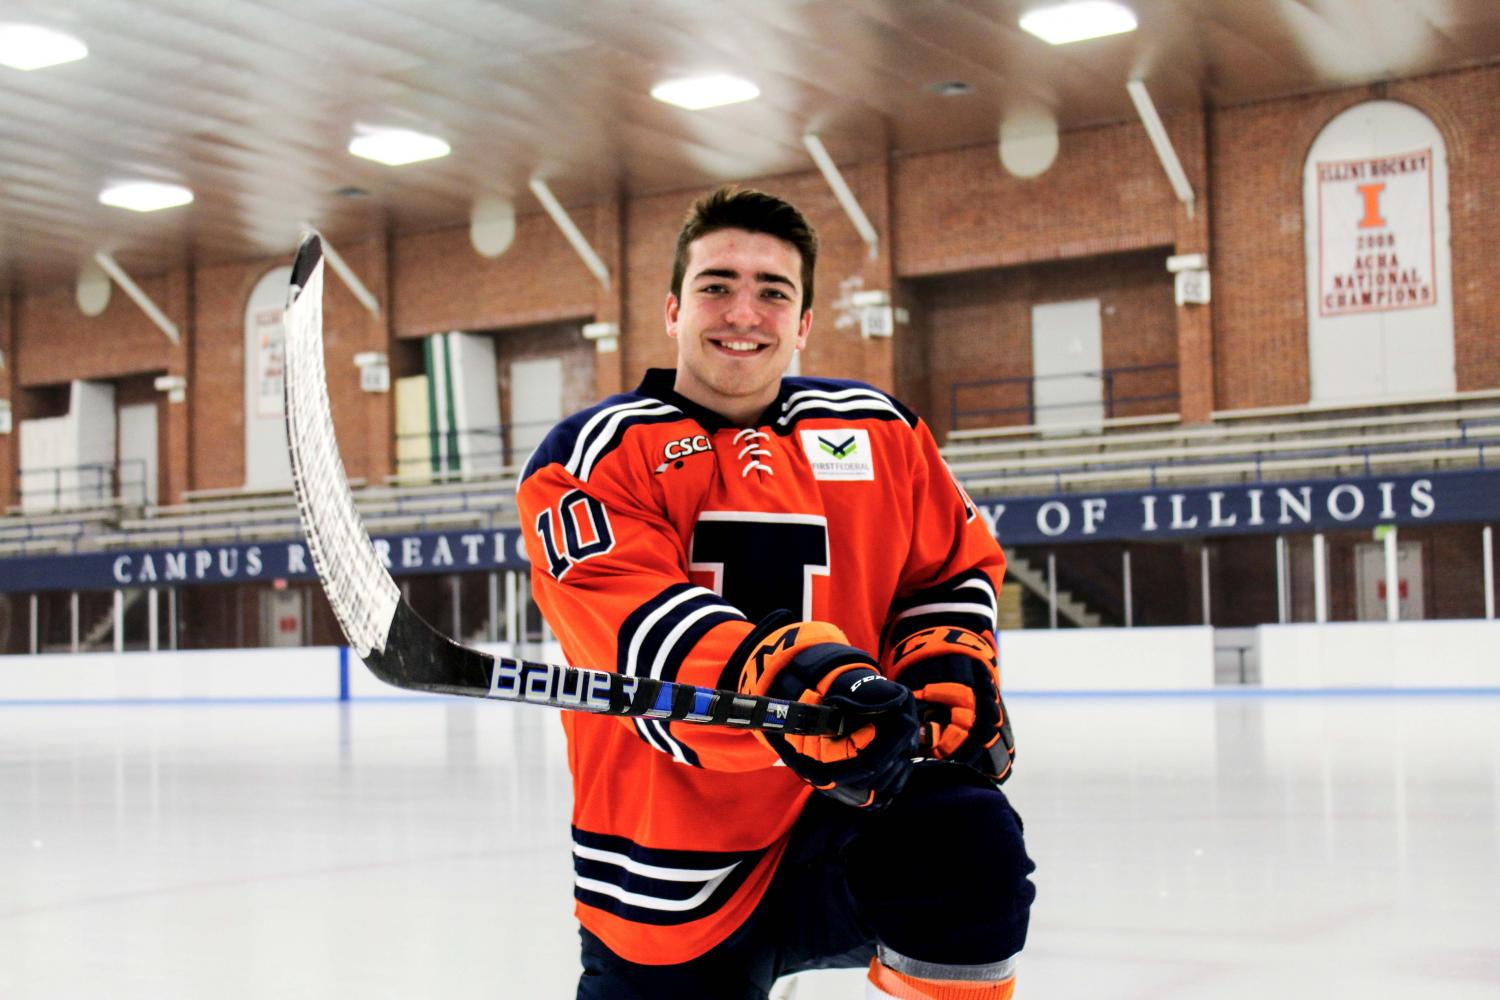 Freshman Drew Richter helped the Illini to an 8-0 start to the season with two wins over the McKendree Bearcats over the weekend. The forward scored two goals on Saturday, giving the team a 2-1 lead in the first period. The Illini won 6-1. Head coach Nick Fabbrini said Richter may be the fastest player on the team.